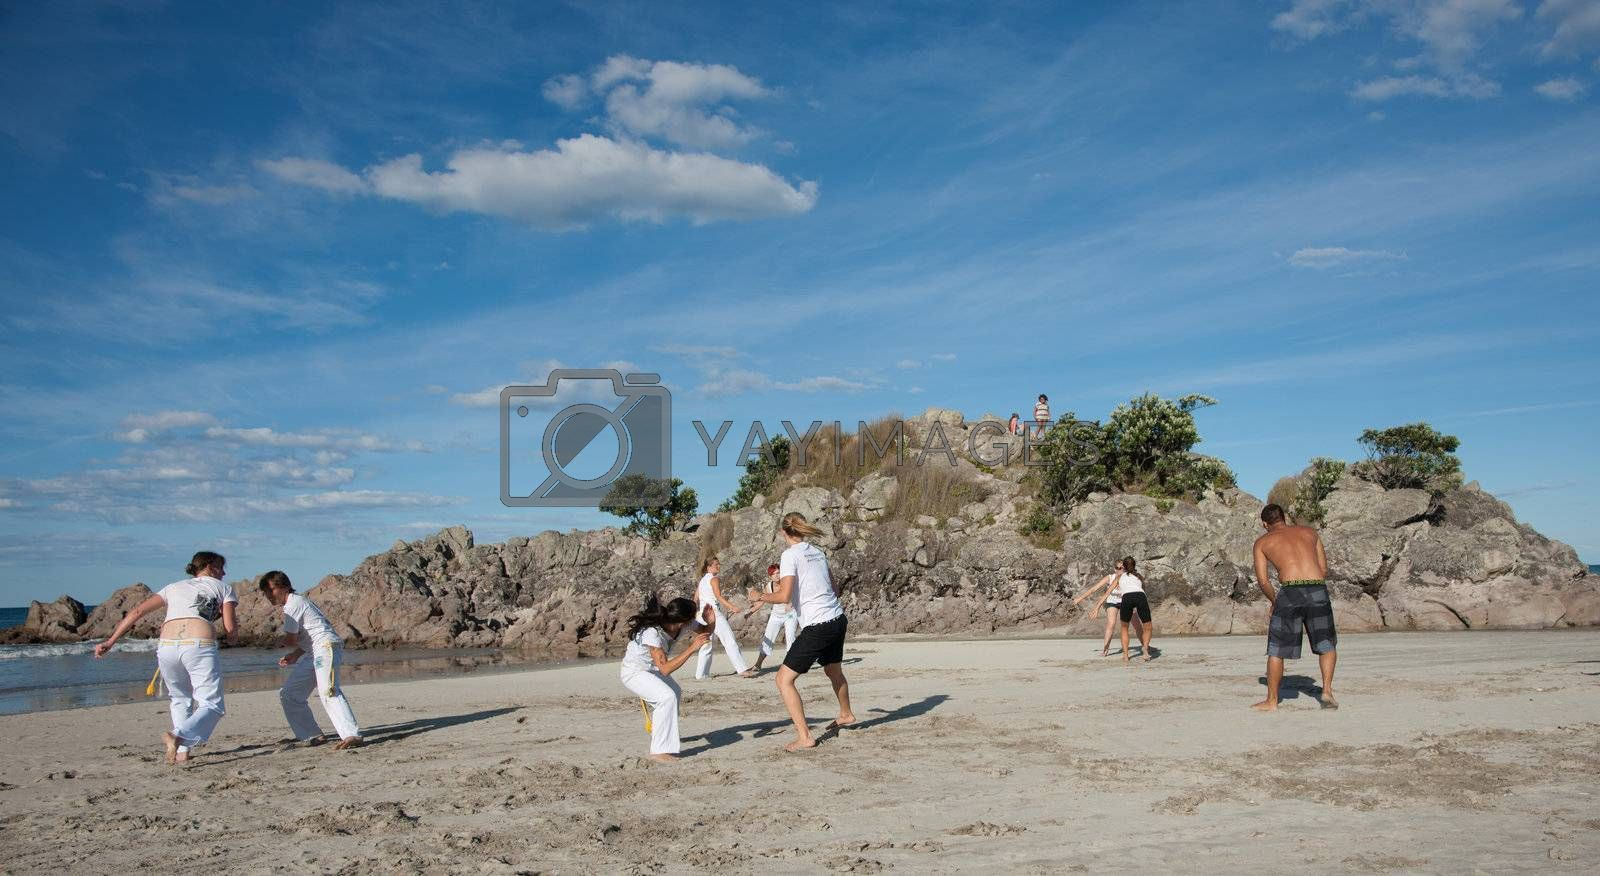 TAURANGA, NEW ZEALAND - JANUARY 23: Group of youths practice the art of capoeira on the Mount Maunganui beach, Tauranga New Zealand on January 23 2012. The sport, founded in Brazil is growing globaly.